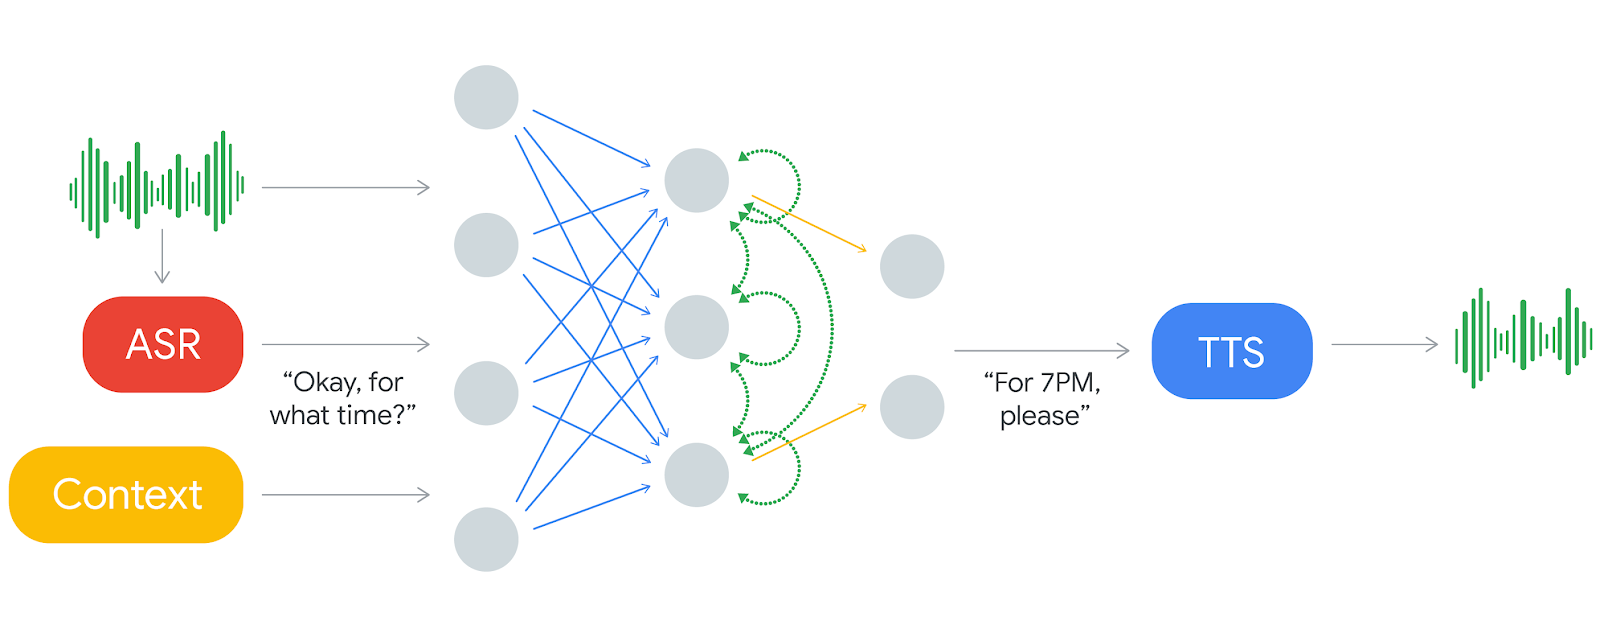 Google AI Blog: Google Duplex: An AI System for